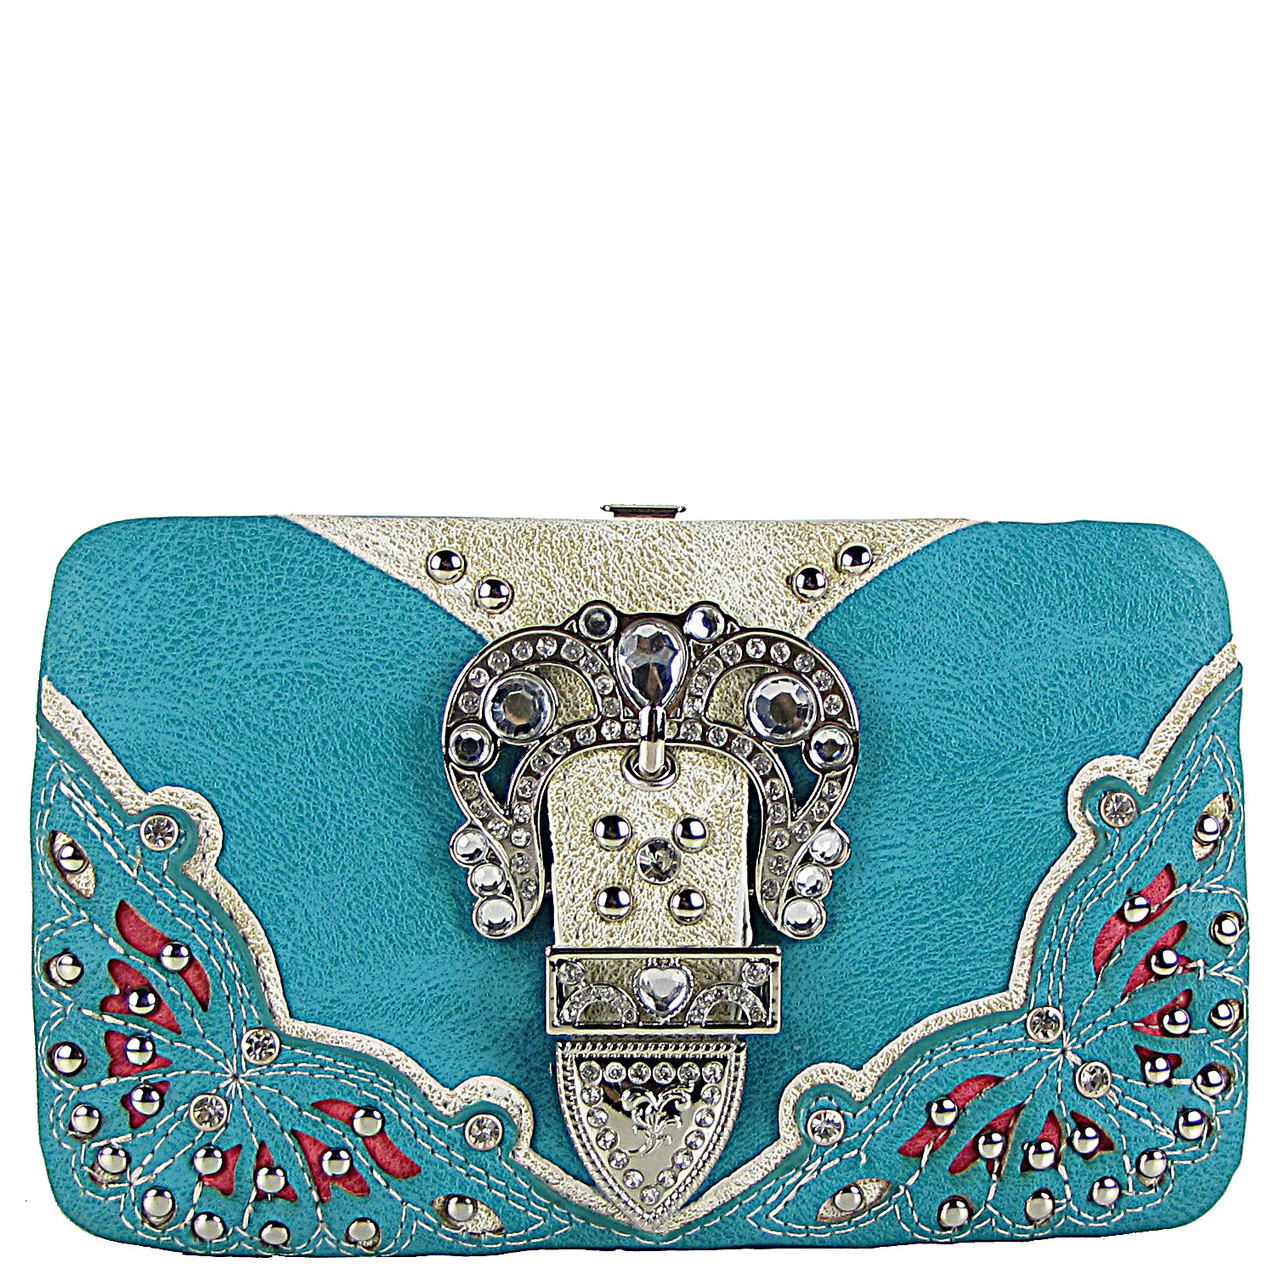 TURQUOISE RHINESTONE BUCKLE WESTERN FLAT THICK WALLET FW2-12114TRQ